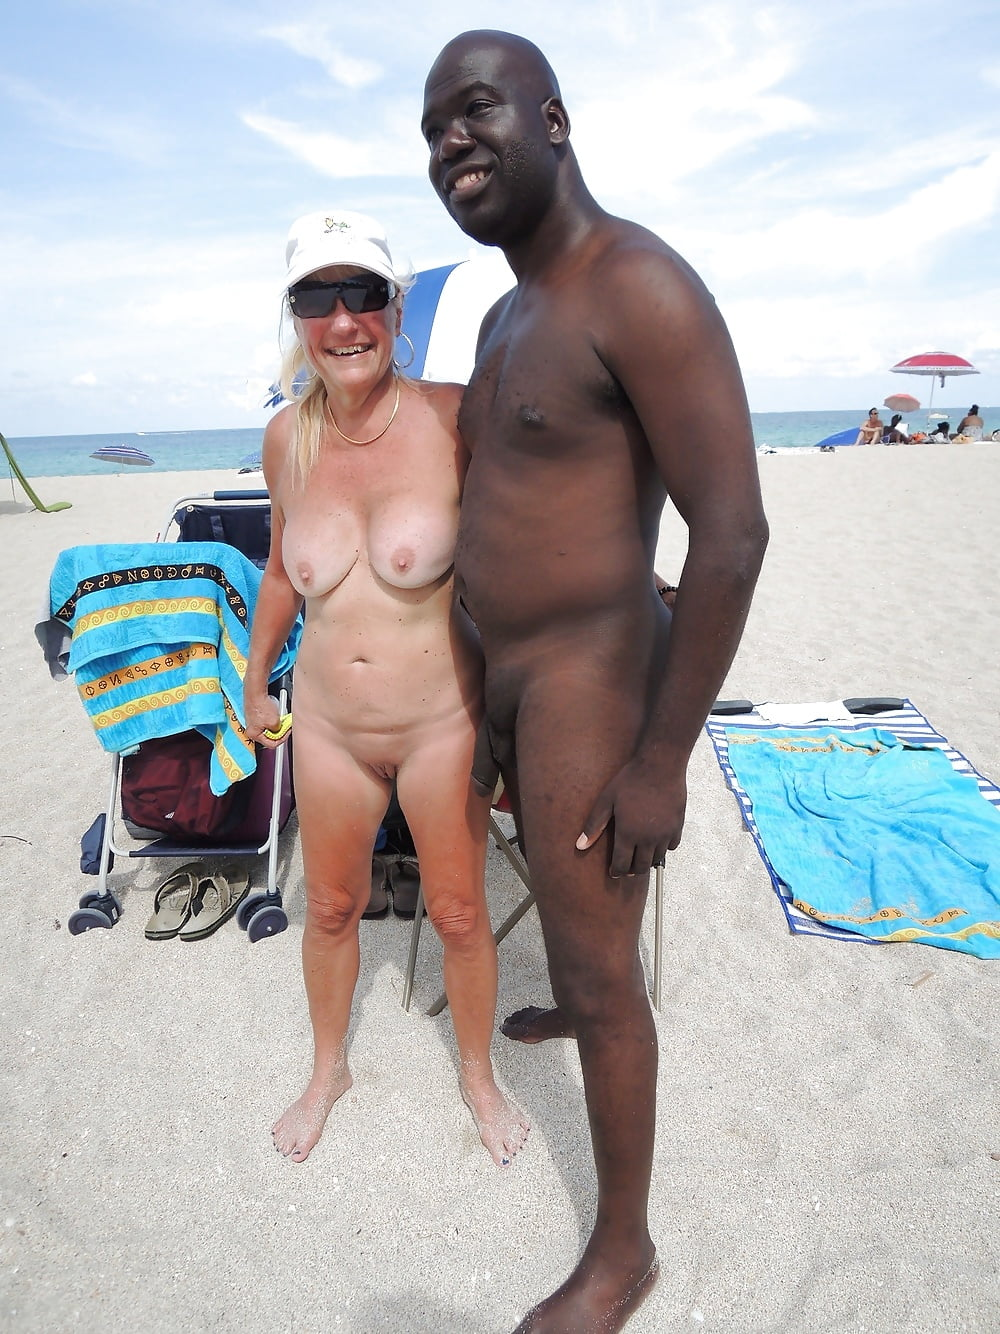 mandingo-in-nudist-beach